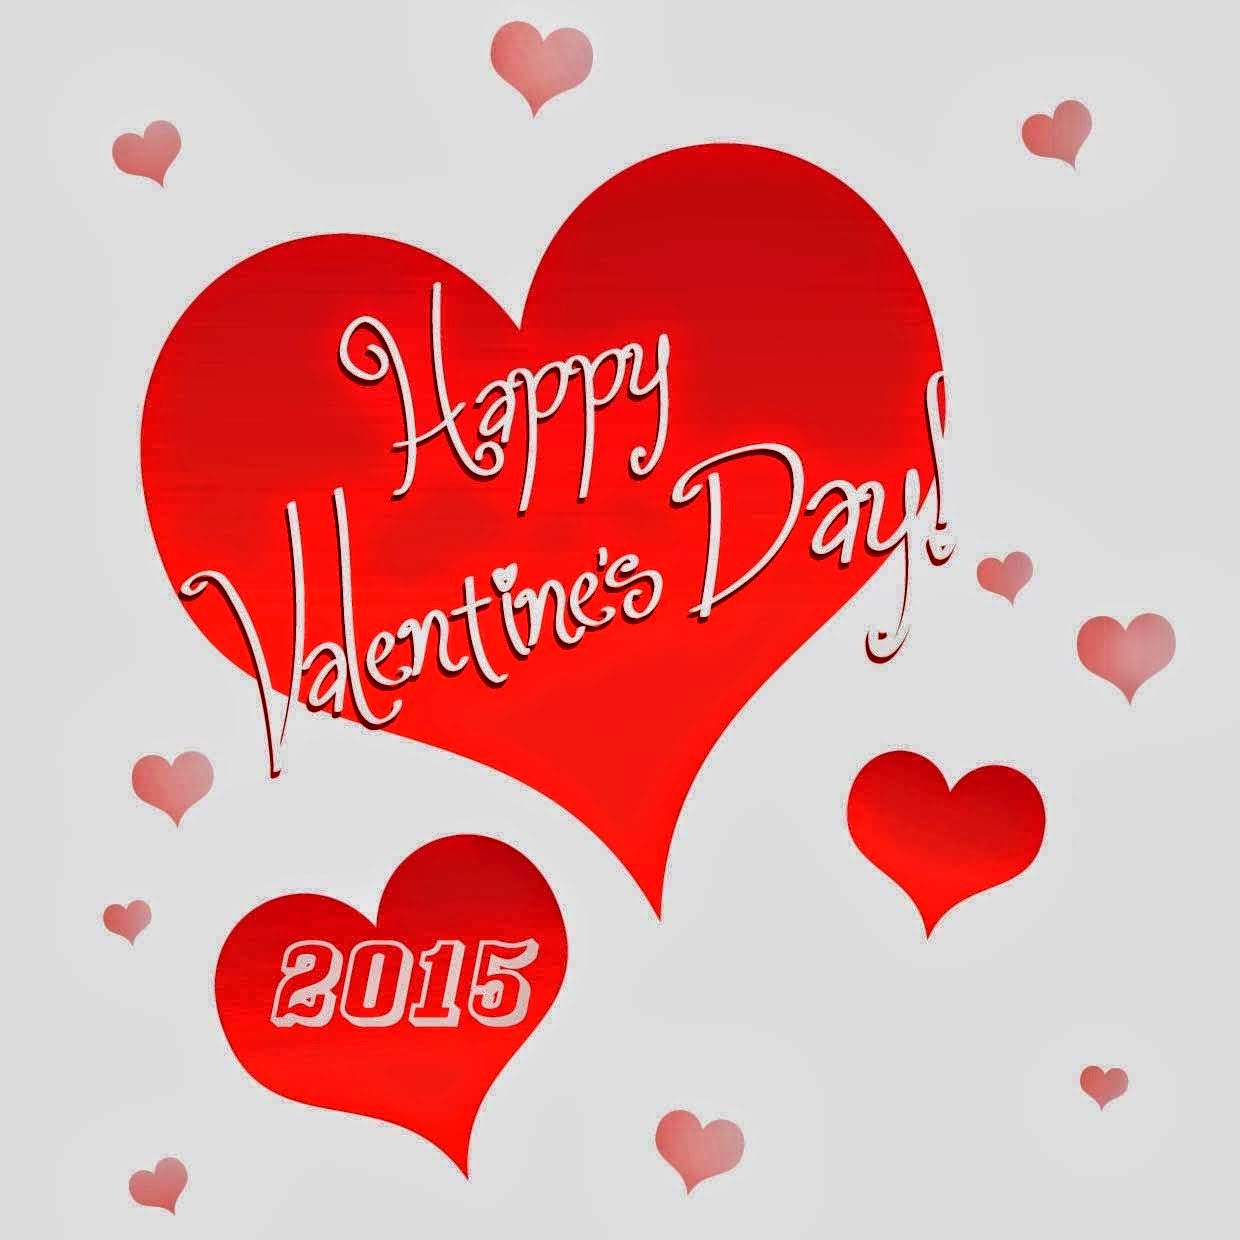 Happy Valentines Day Images Happy Valentines day 2015 Quotes – Valentines Cards 2015